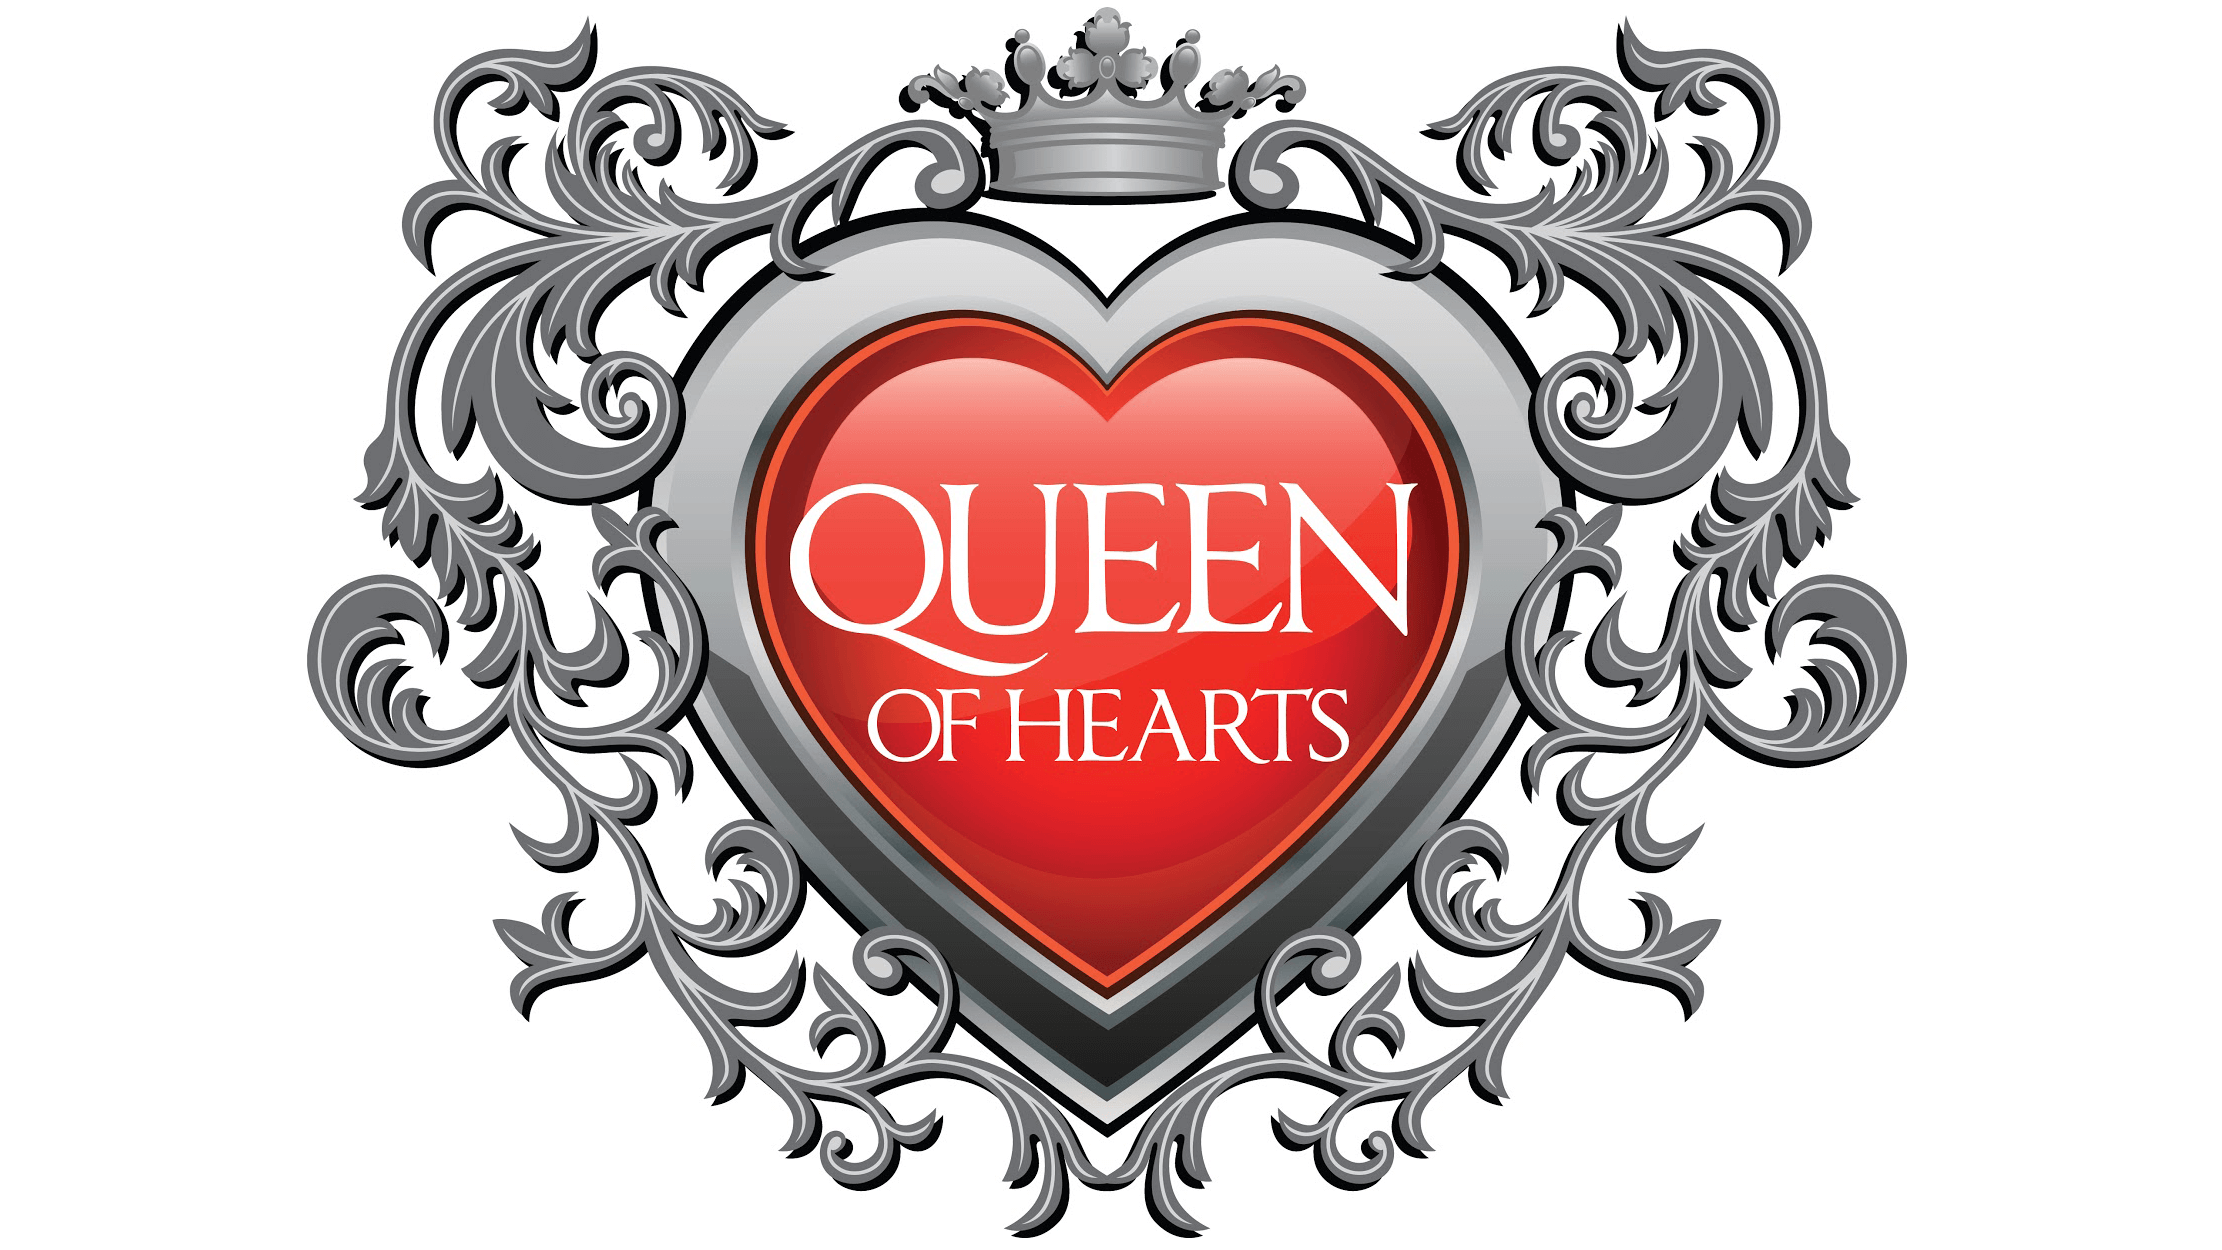 queen of hearts dating agency Queen of hearts branding & events 100 likes planning, co-ordinating, event styling & executing any event with a creative edge & our special touch is.